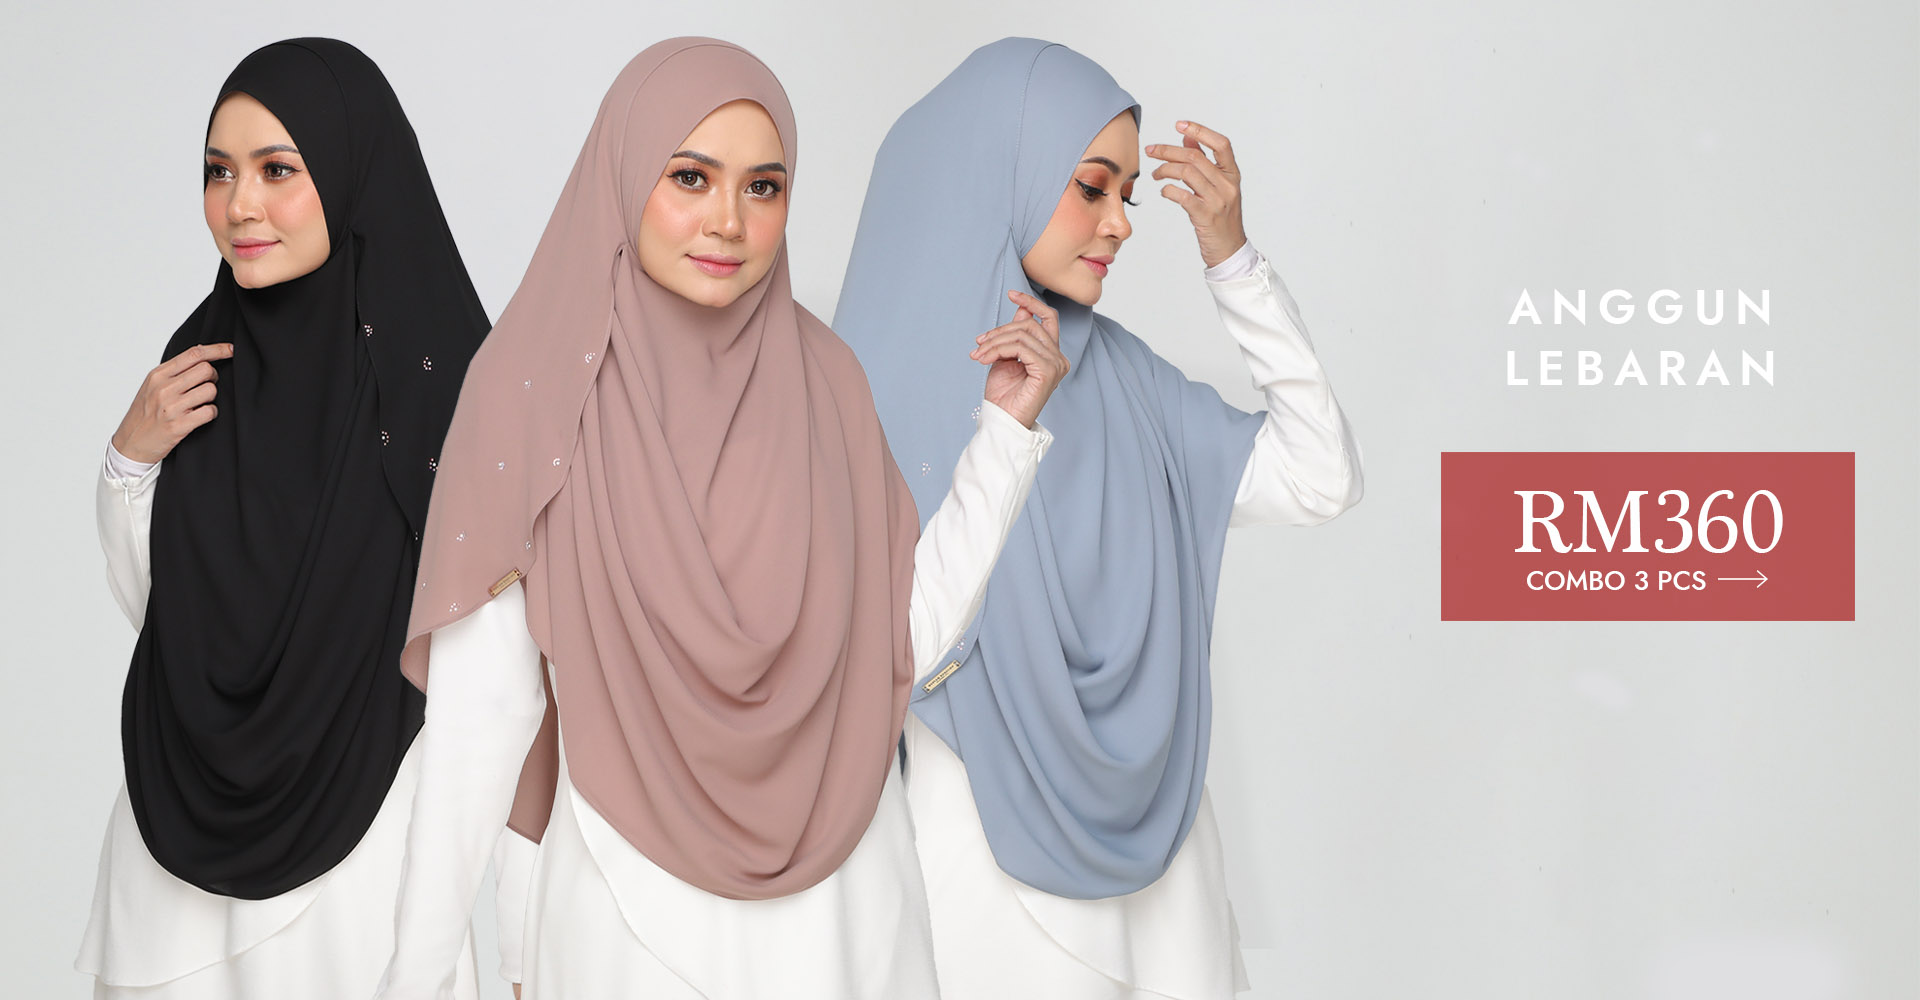 BS Anggun Lebaran Website Catalogue Banner